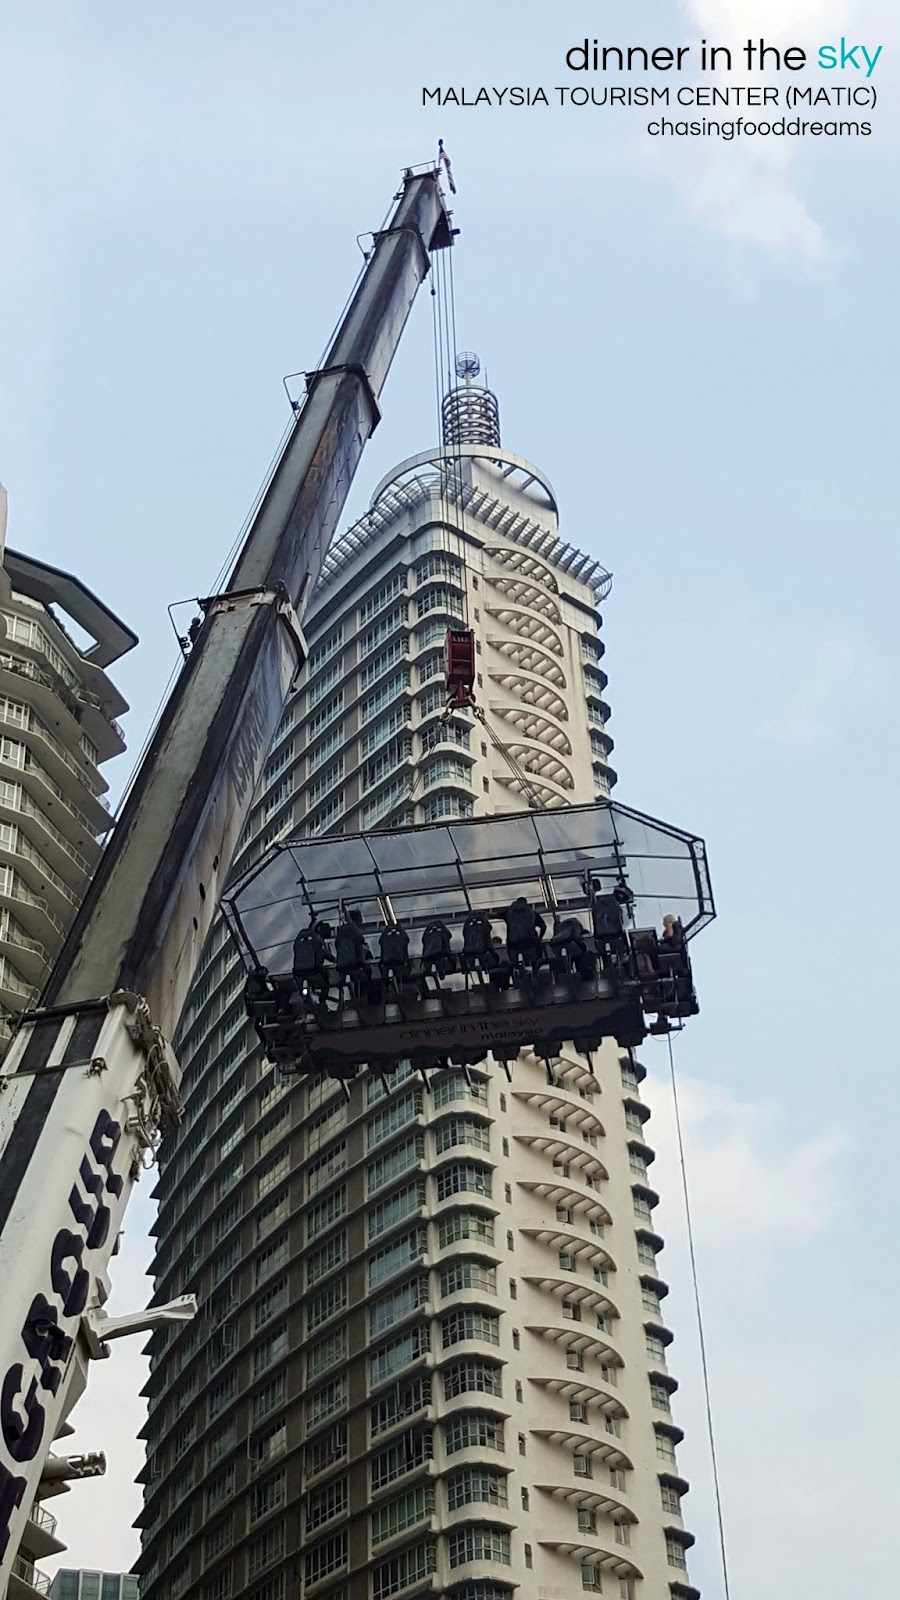 CHASING FOOD DREAMS Dinner In The Sky Malaysia Tourism Center - Dinner in the sky an unforgettable experience